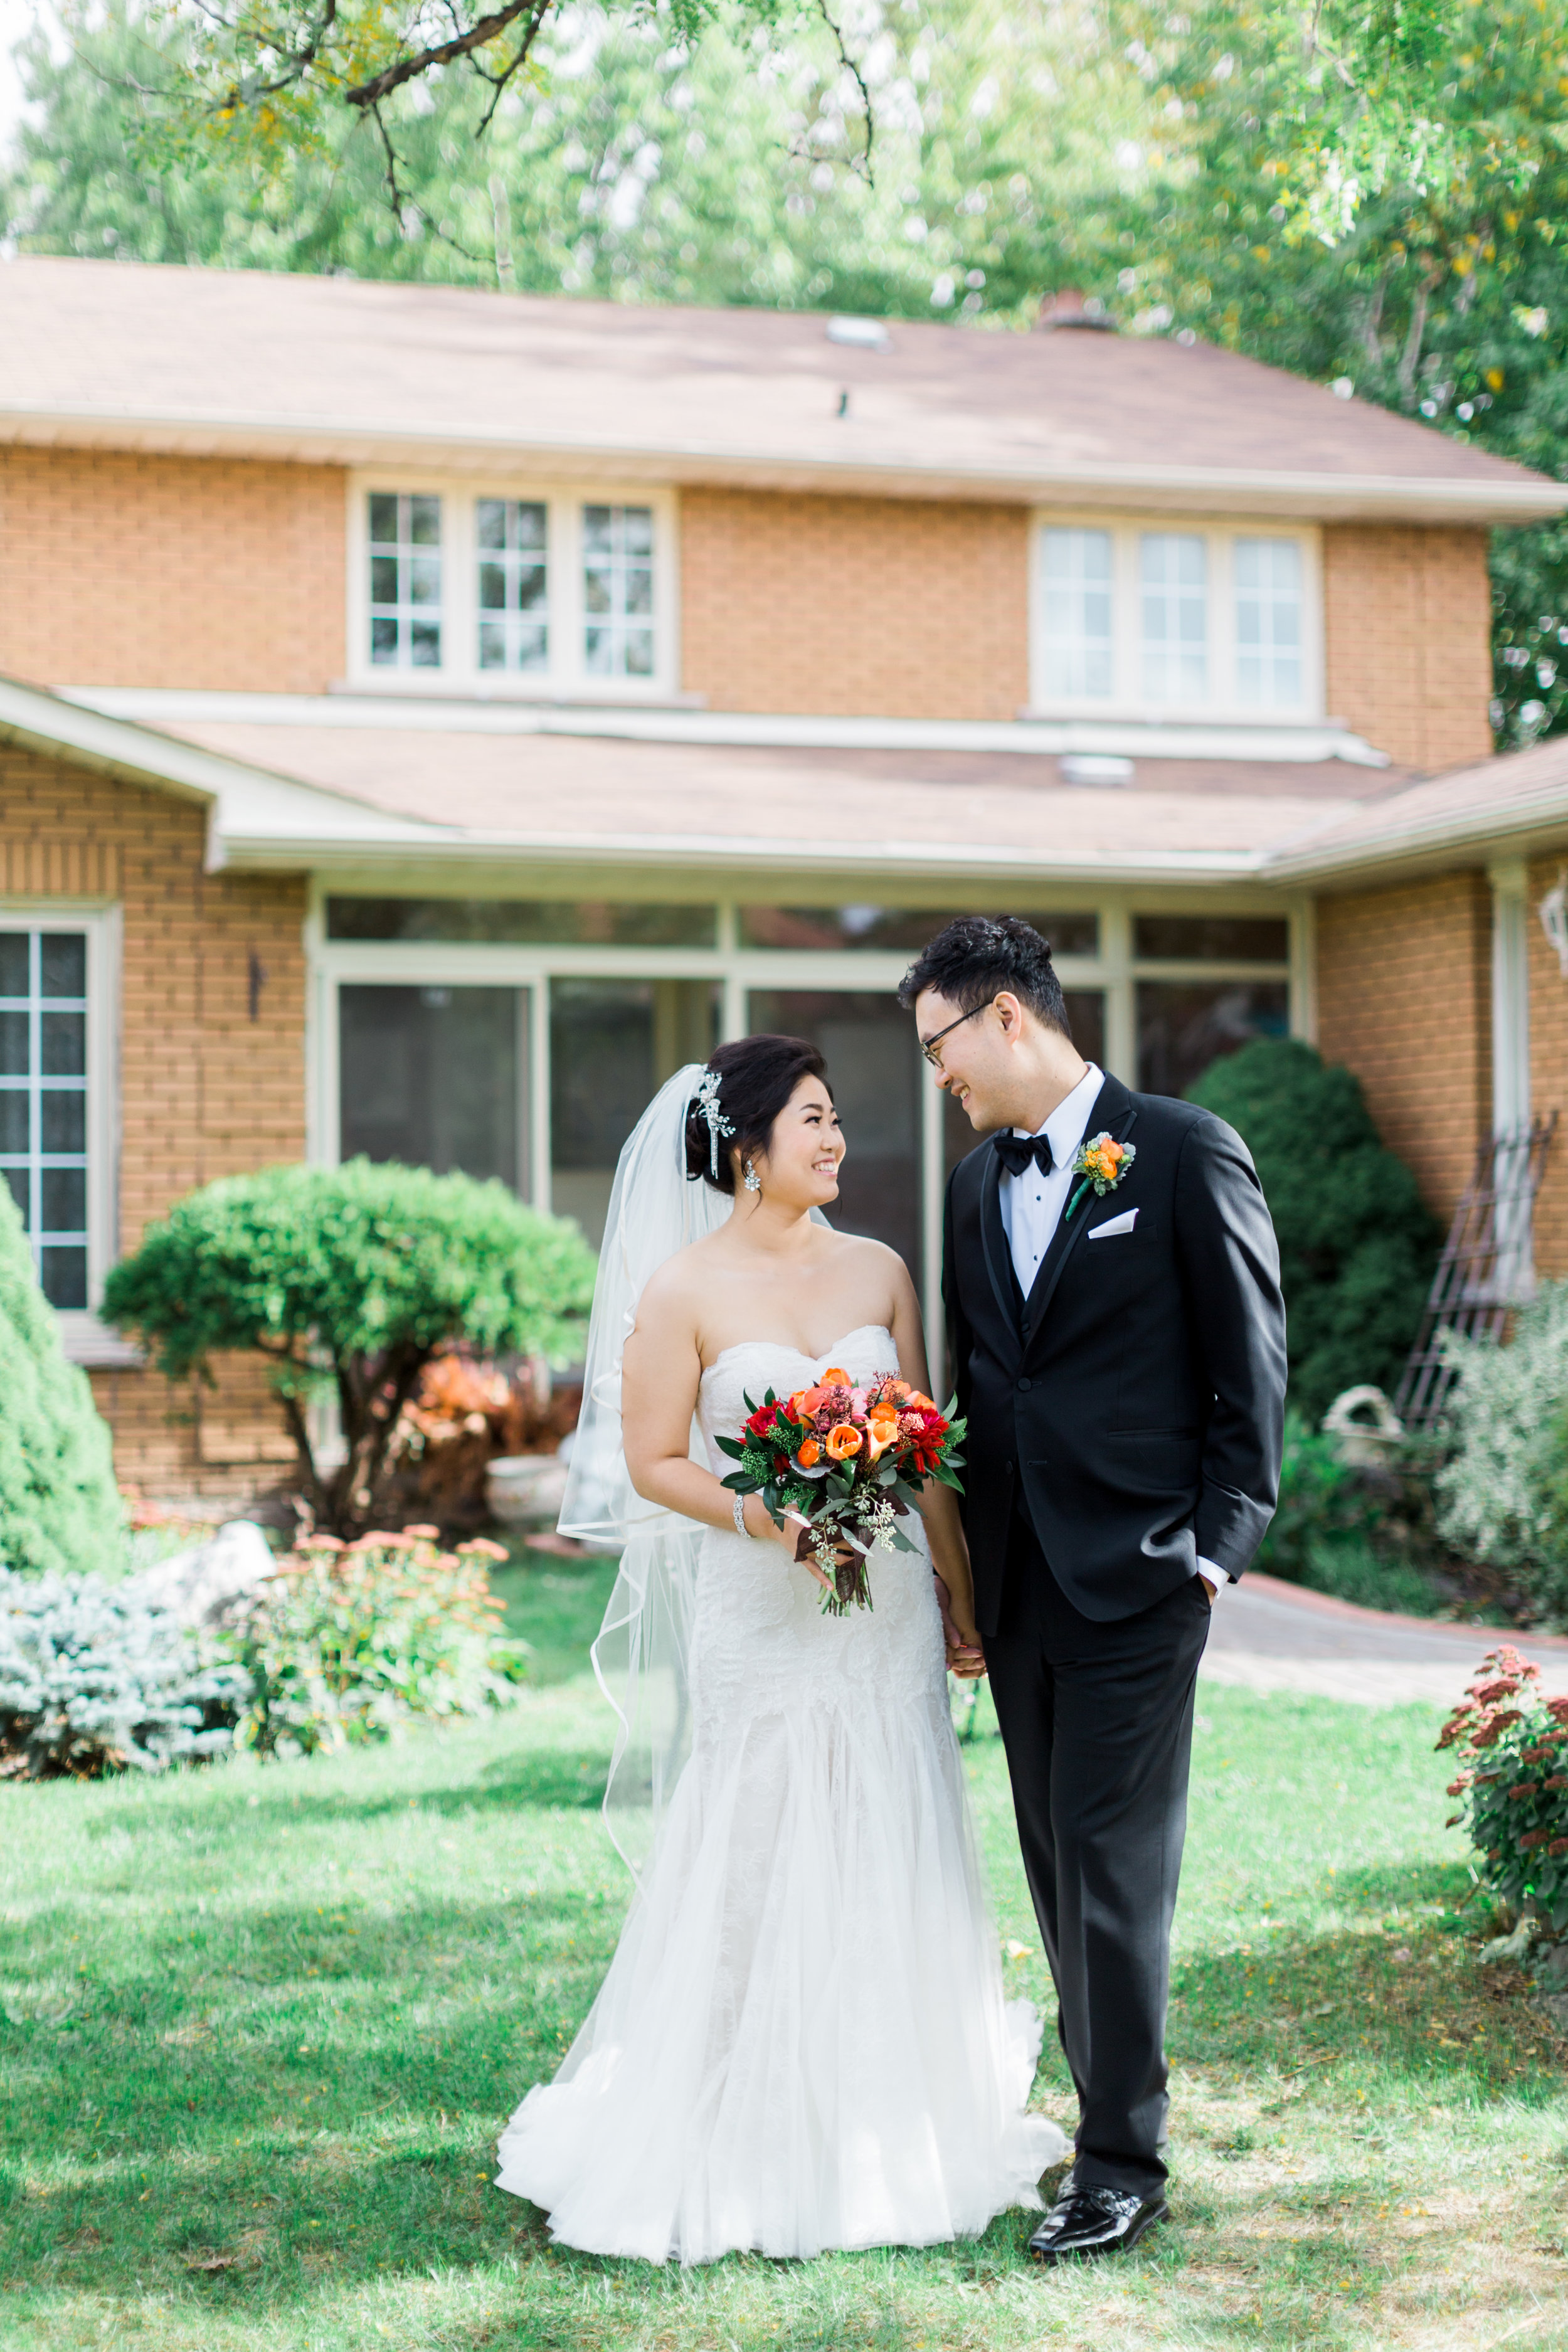 Toronto Fine Art Photographer - Toronto Hunt Club Wedding - First Look-19.jpg